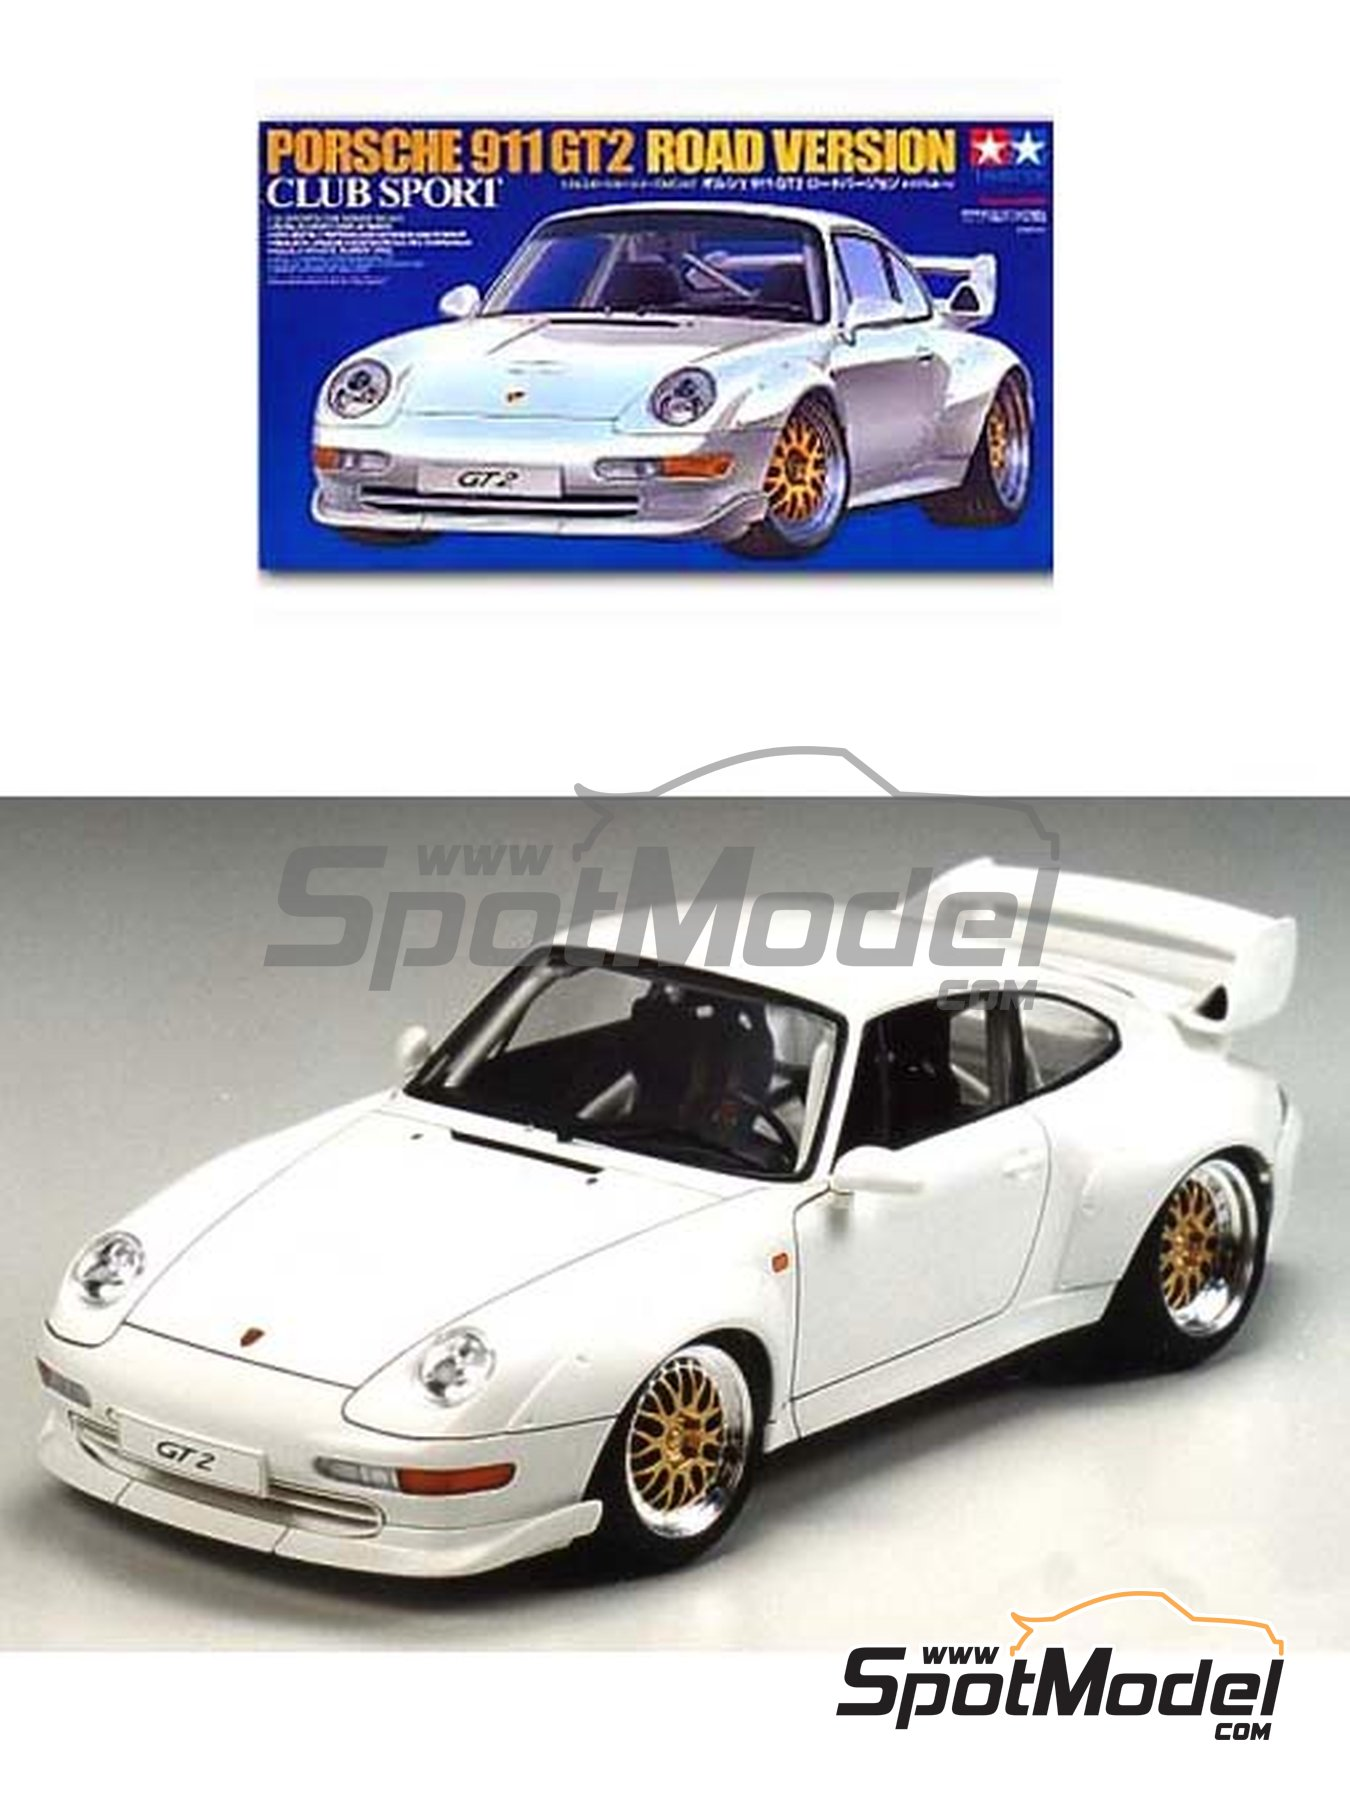 tamiya model car kit 1 24 scale porsche 911 993 gt2. Black Bedroom Furniture Sets. Home Design Ideas